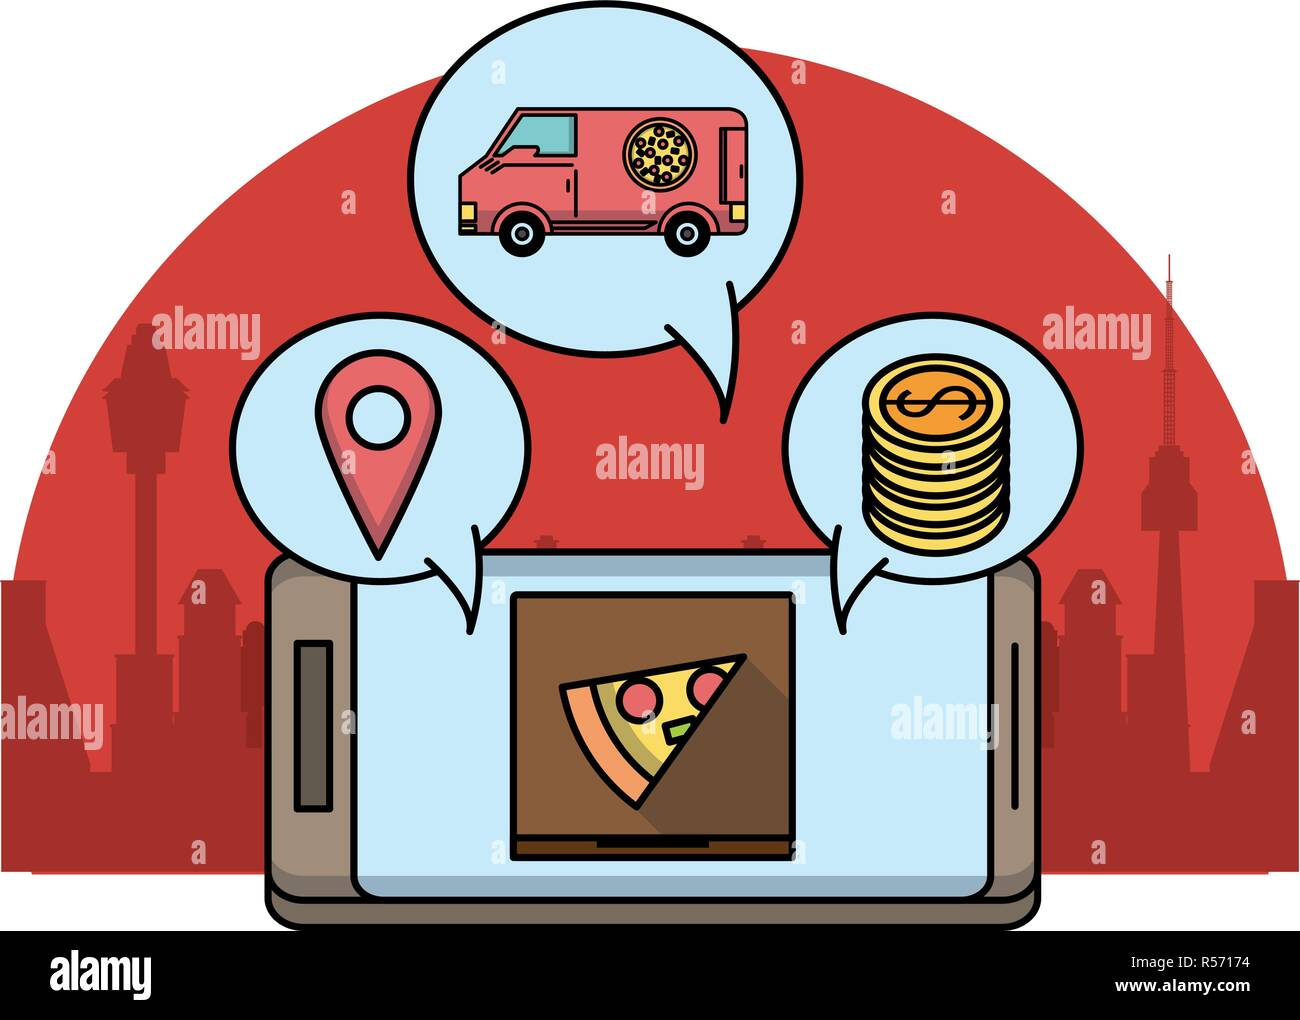 Online food order and delivery Stock Vector Art